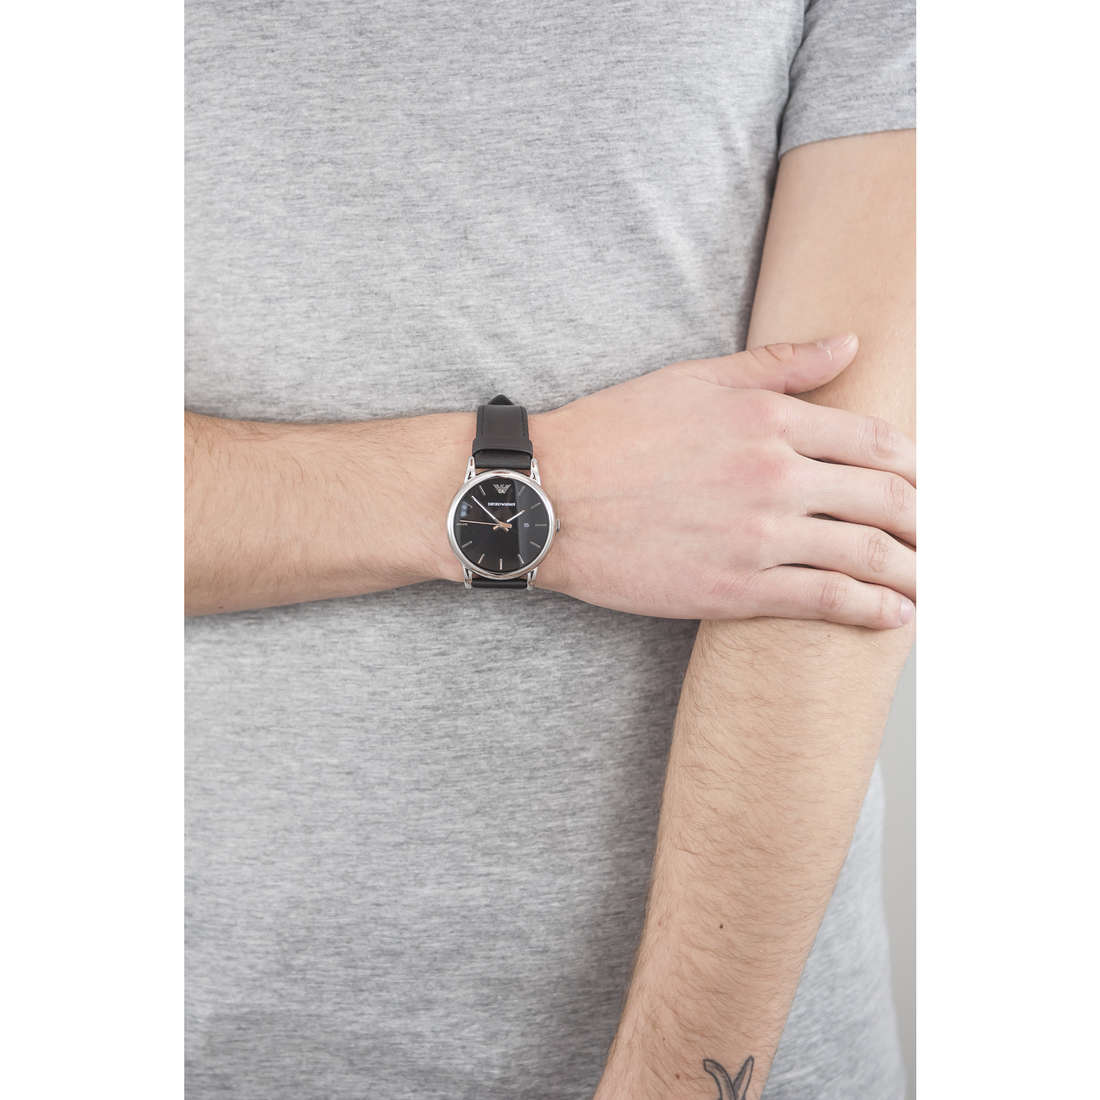 Emporio Armani only time man AR1692 indosso